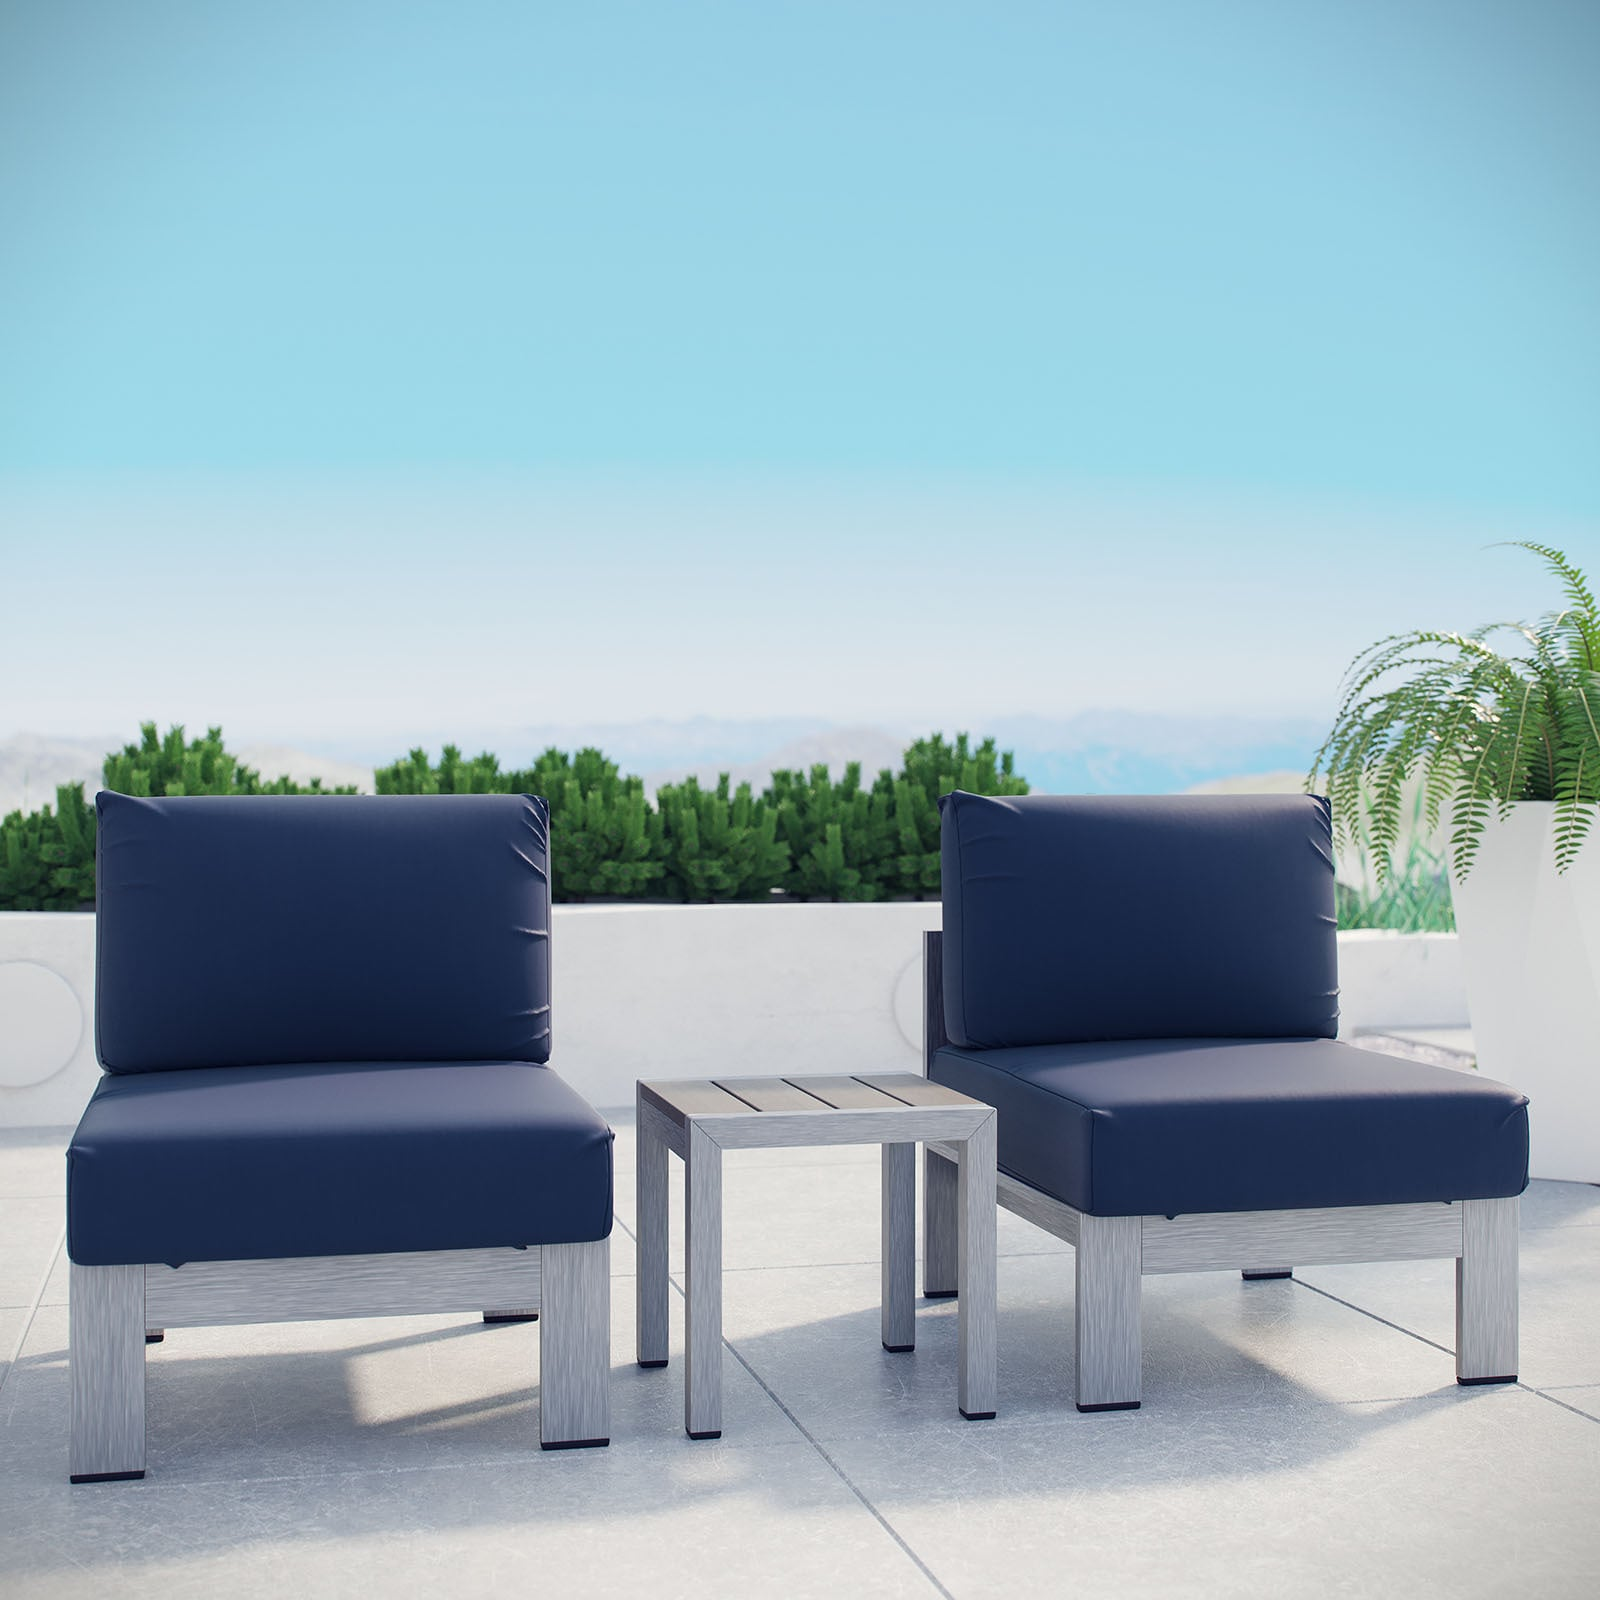 S Aluminum Outdoor Sectional Sofa Set Of 3 On Free Shipping Today 13476761